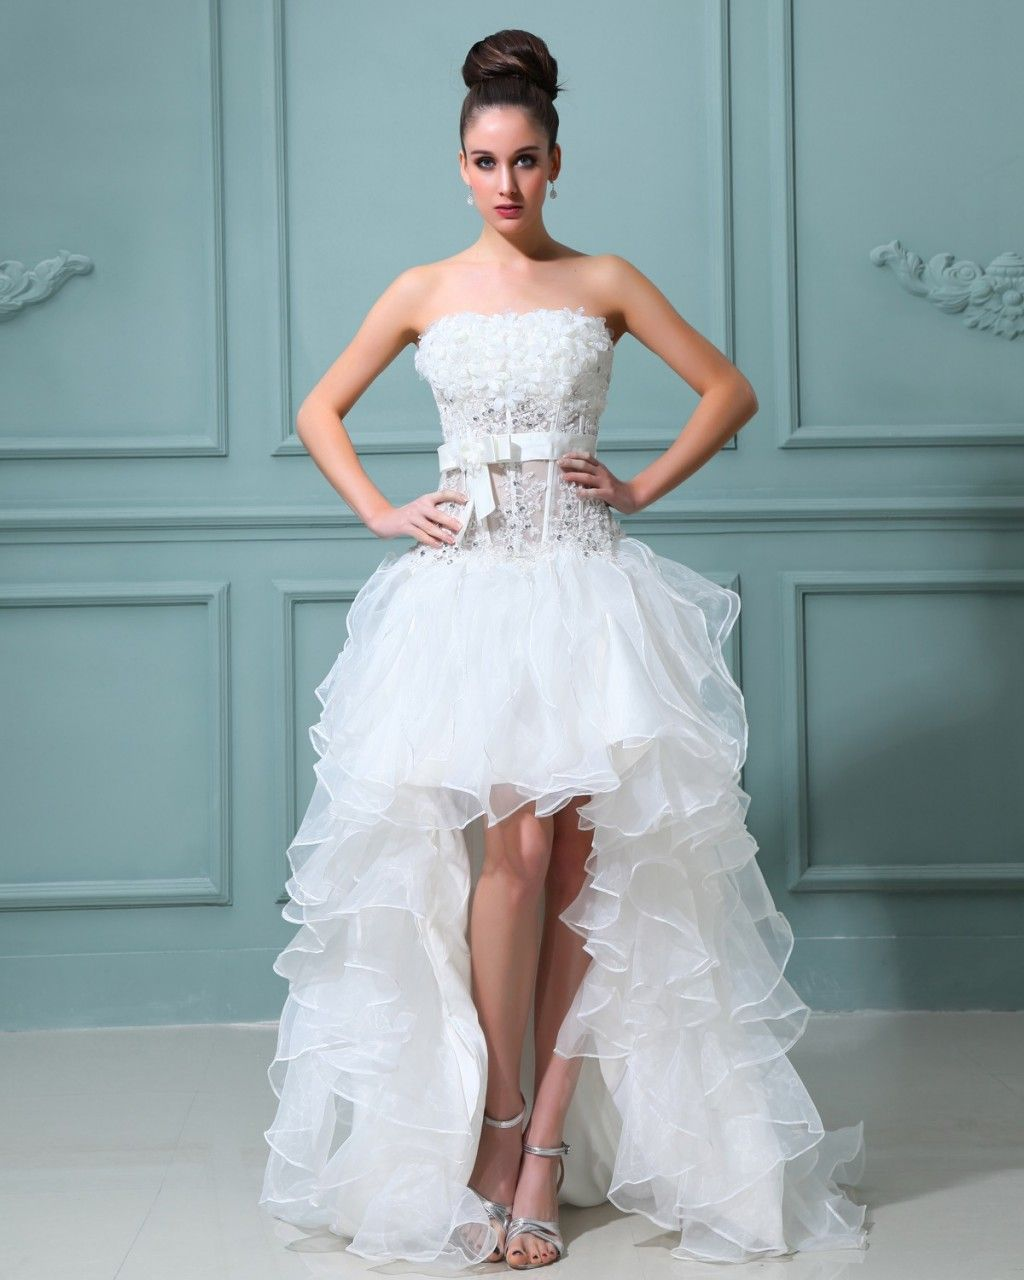 beautiful-strapless-wedding-dress | Straplees Wedding Dress ...